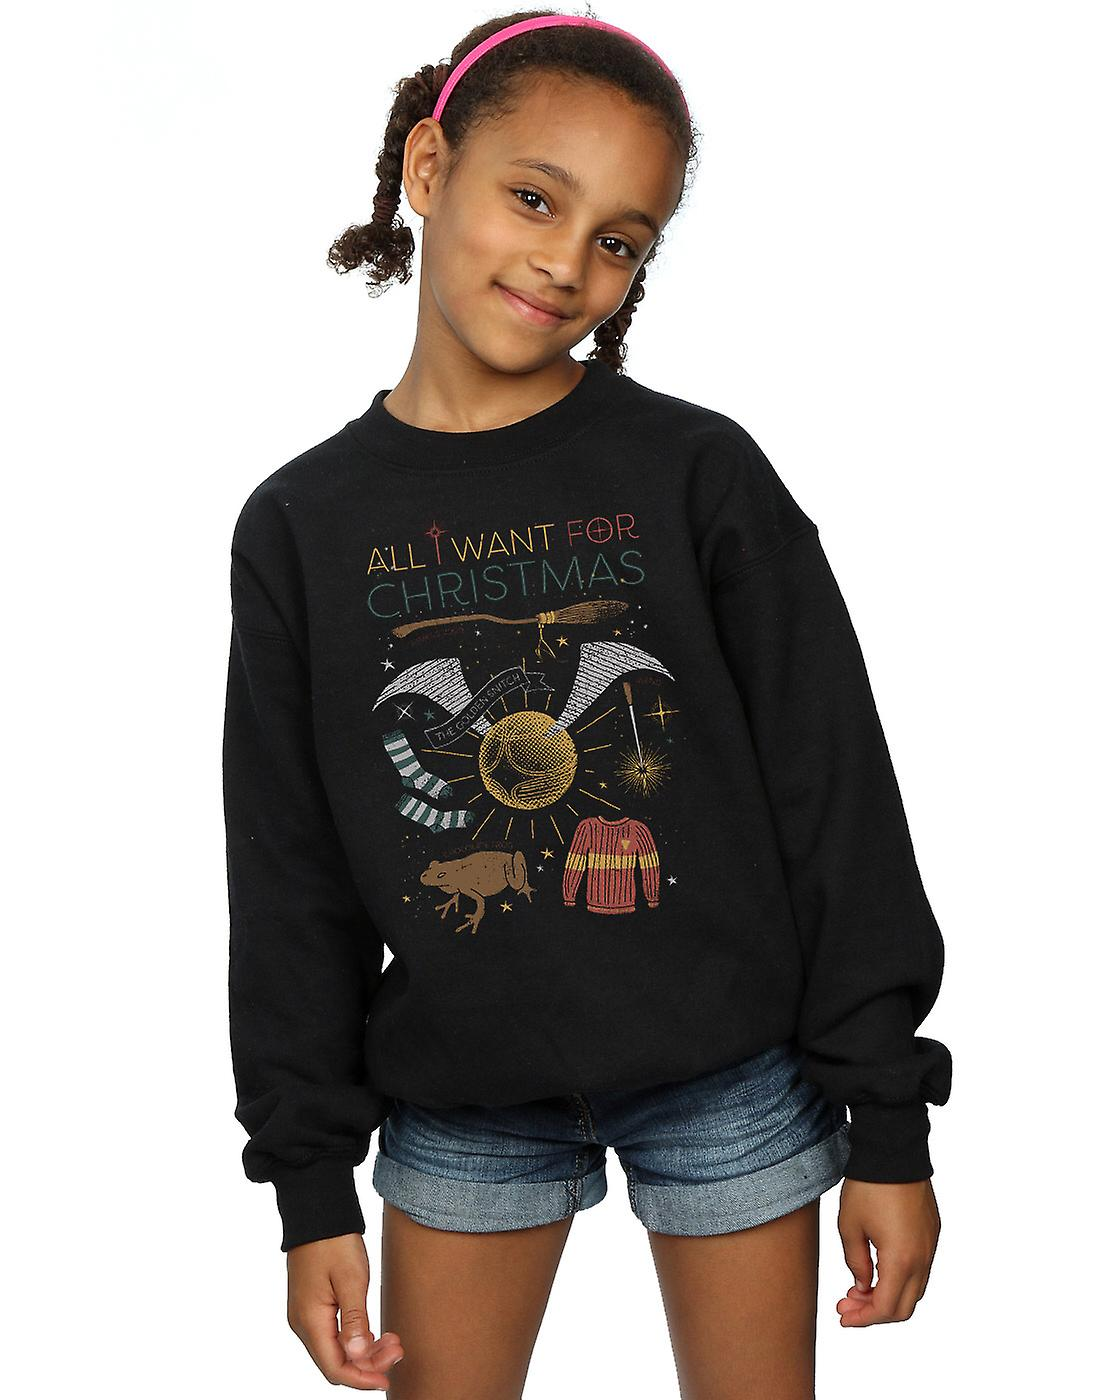 Harry Potter Girls All I Want For Christmas Sweatshirt